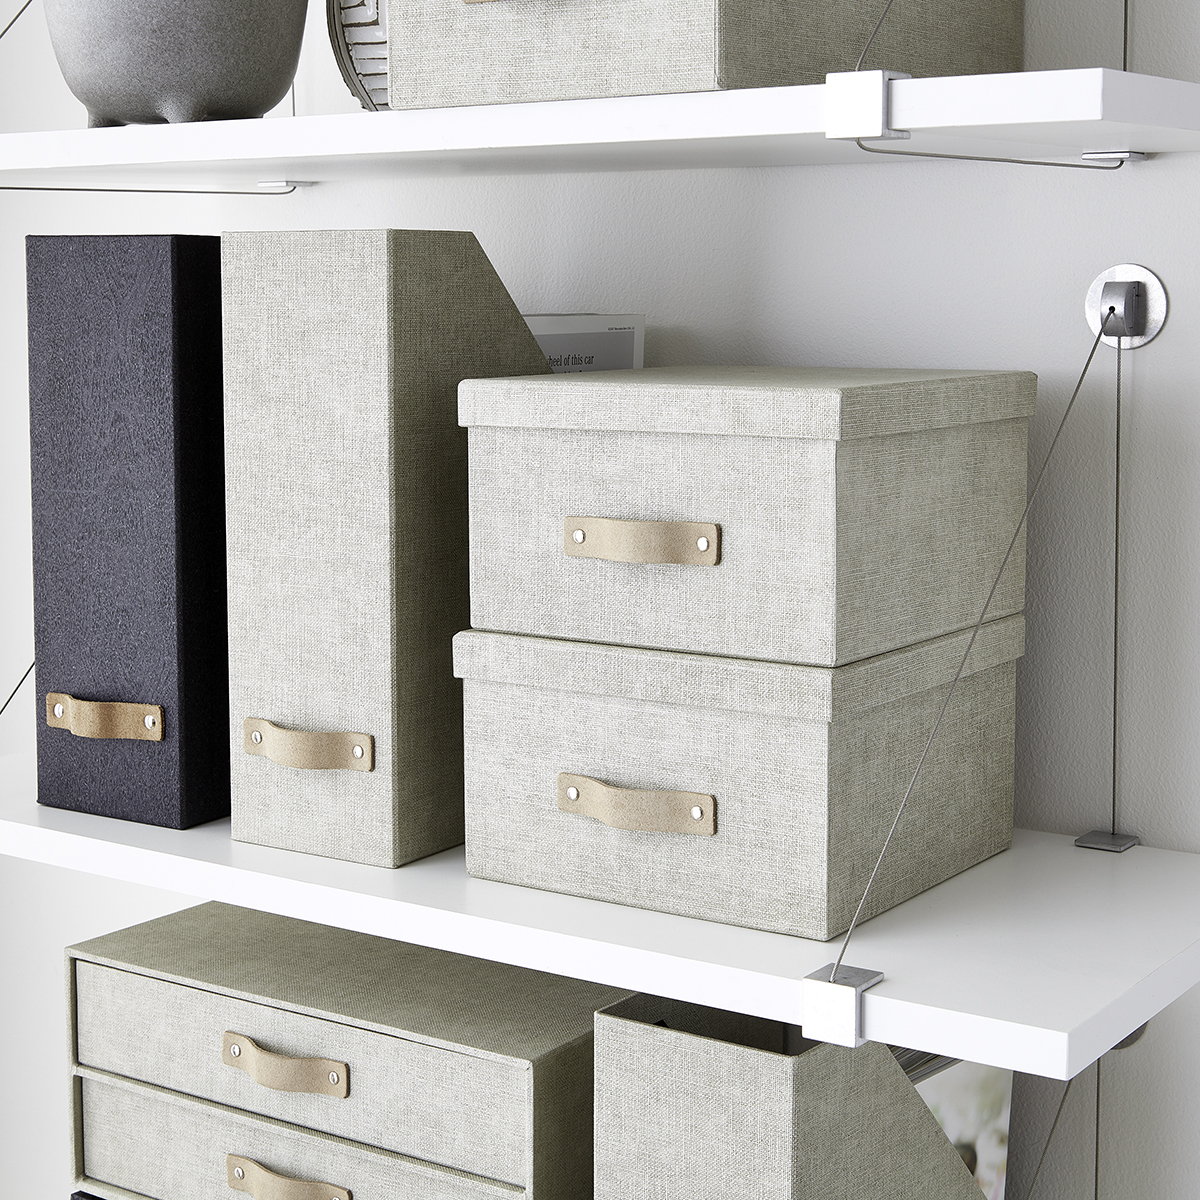 Shelf with Cable Brackets